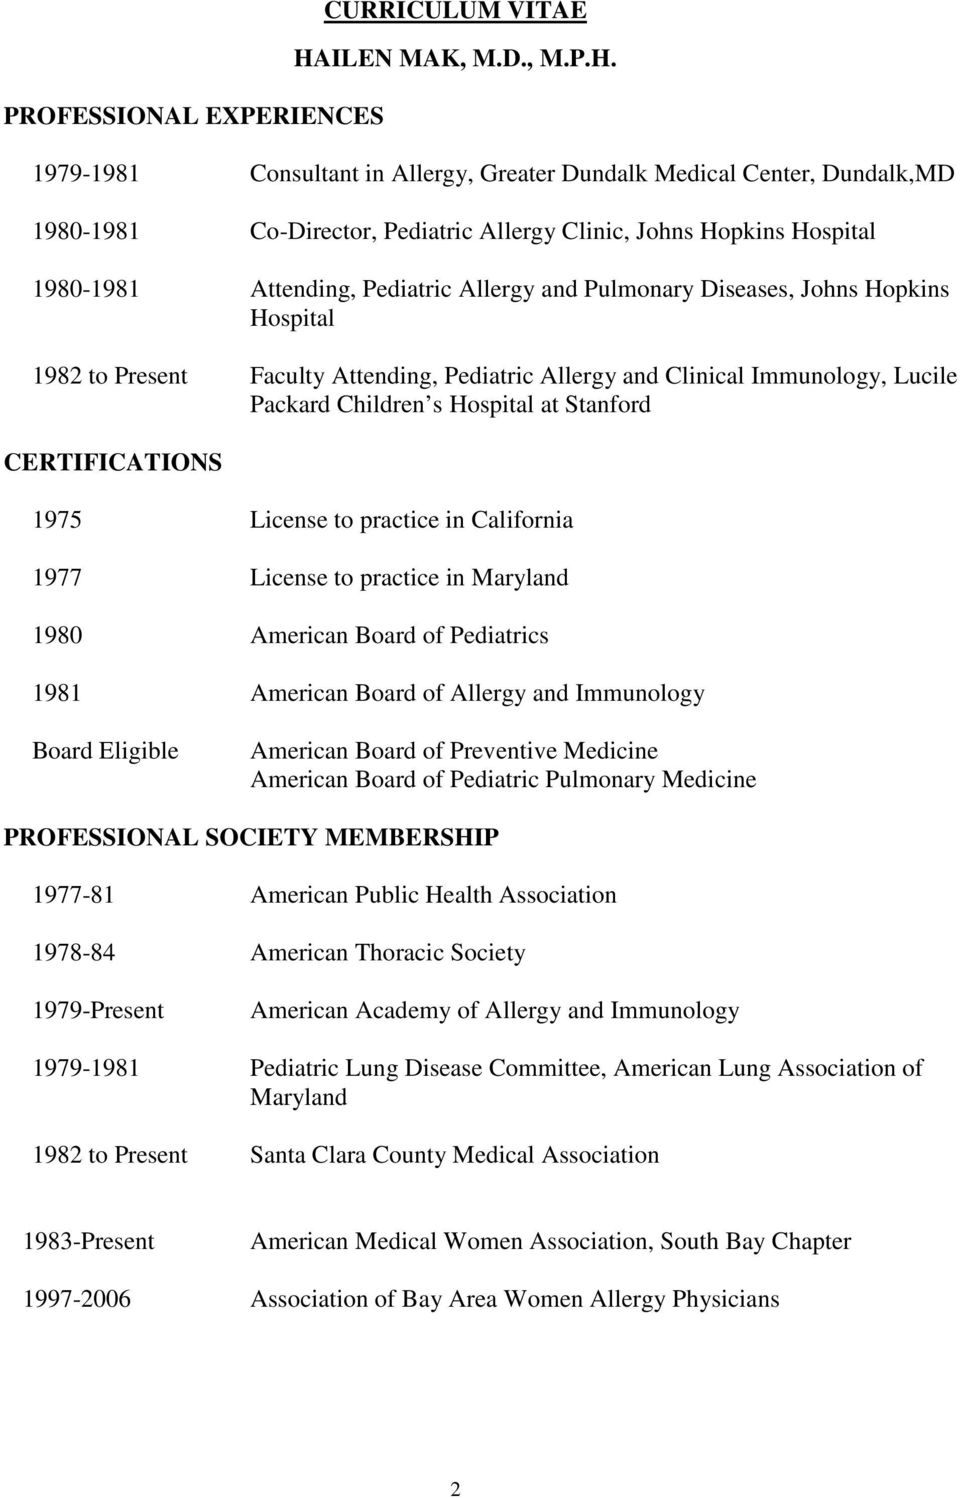 Stanford CERTIFICATIONS 1975 License to practice in California 1977 License to practice in Maryland 1980 American Board of Pediatrics 1981 American Board of Allergy and Immunology Board Eligible